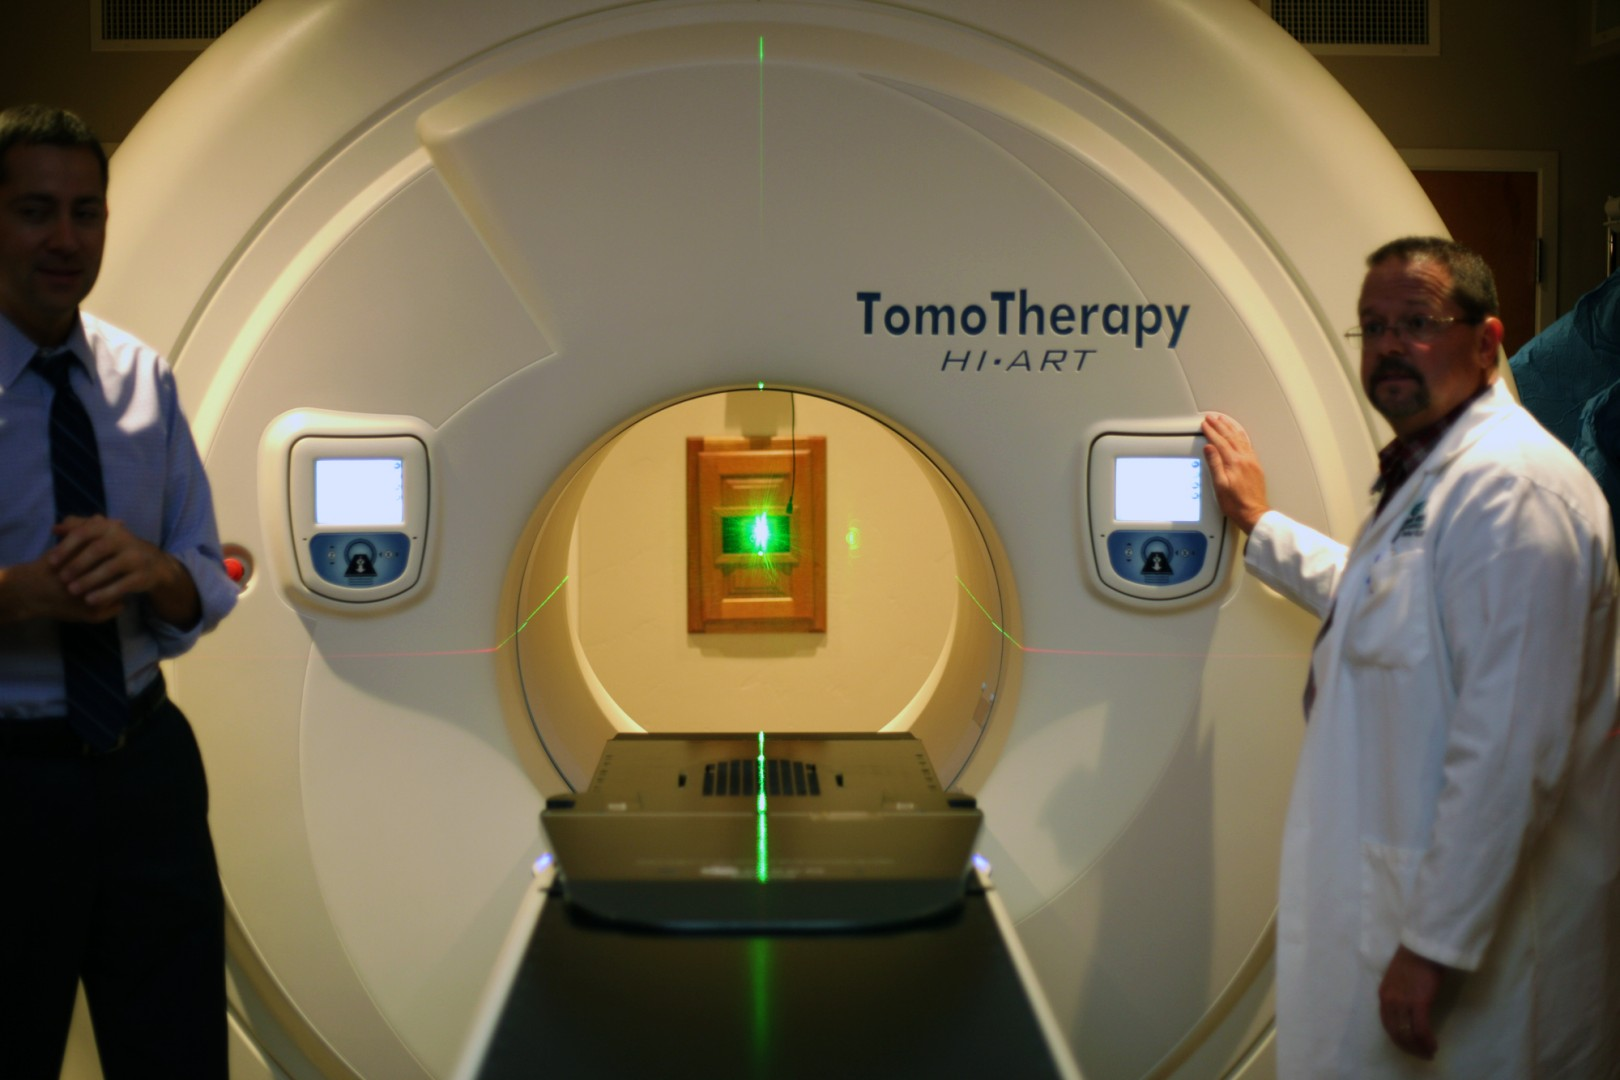 TomoTherapy machine, Gamma West Cancer Services, St. George, Utah, 2014 | Photo courtesy of Gamma West, St. George News